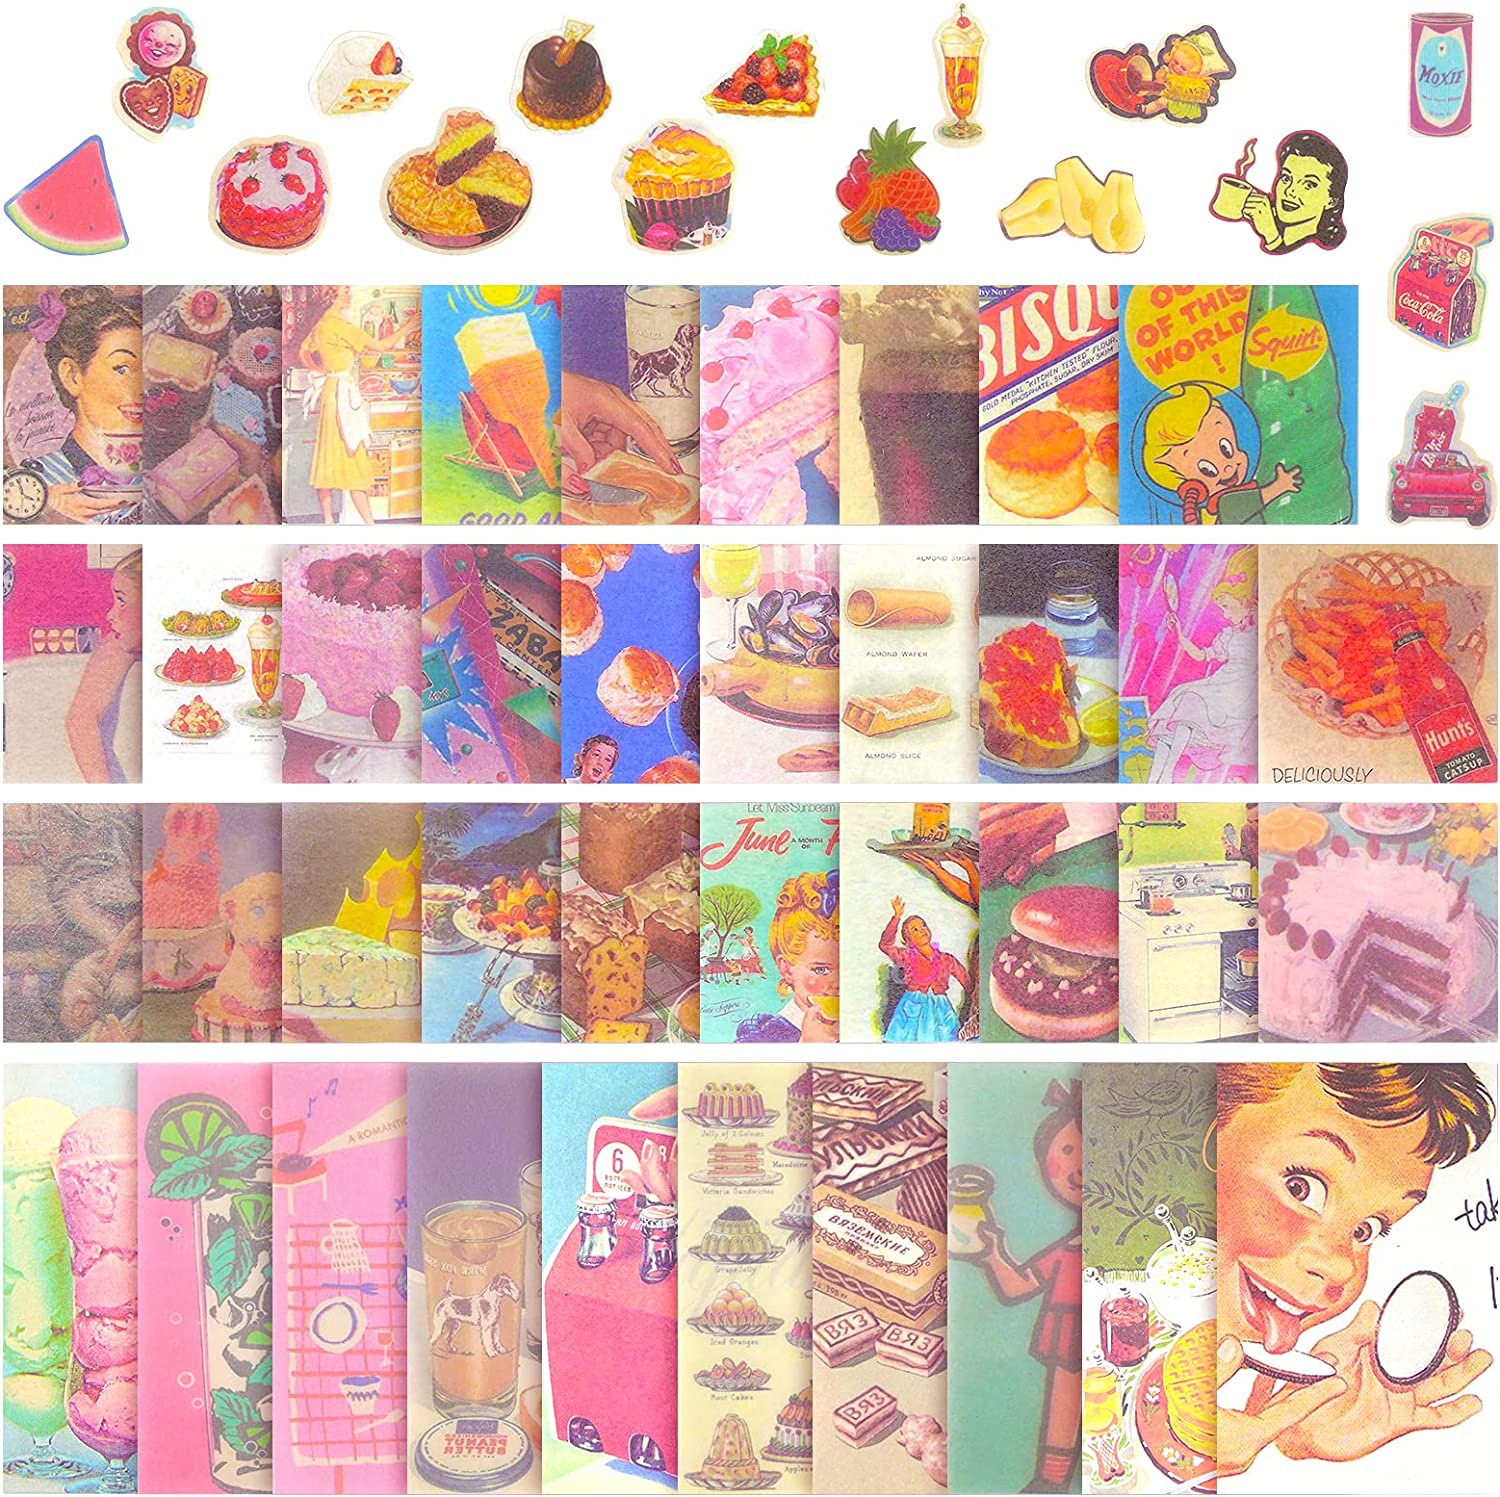 55 Pieces Vintage Food Scrapbook Stickers Vintage Scrapbook Stickers Pack Self Adhesive Paper Decals Food Ice Cream Cake Aesthetic Stickers for Arts Diary Journal Scrapbooking DIY Crafts Decoration